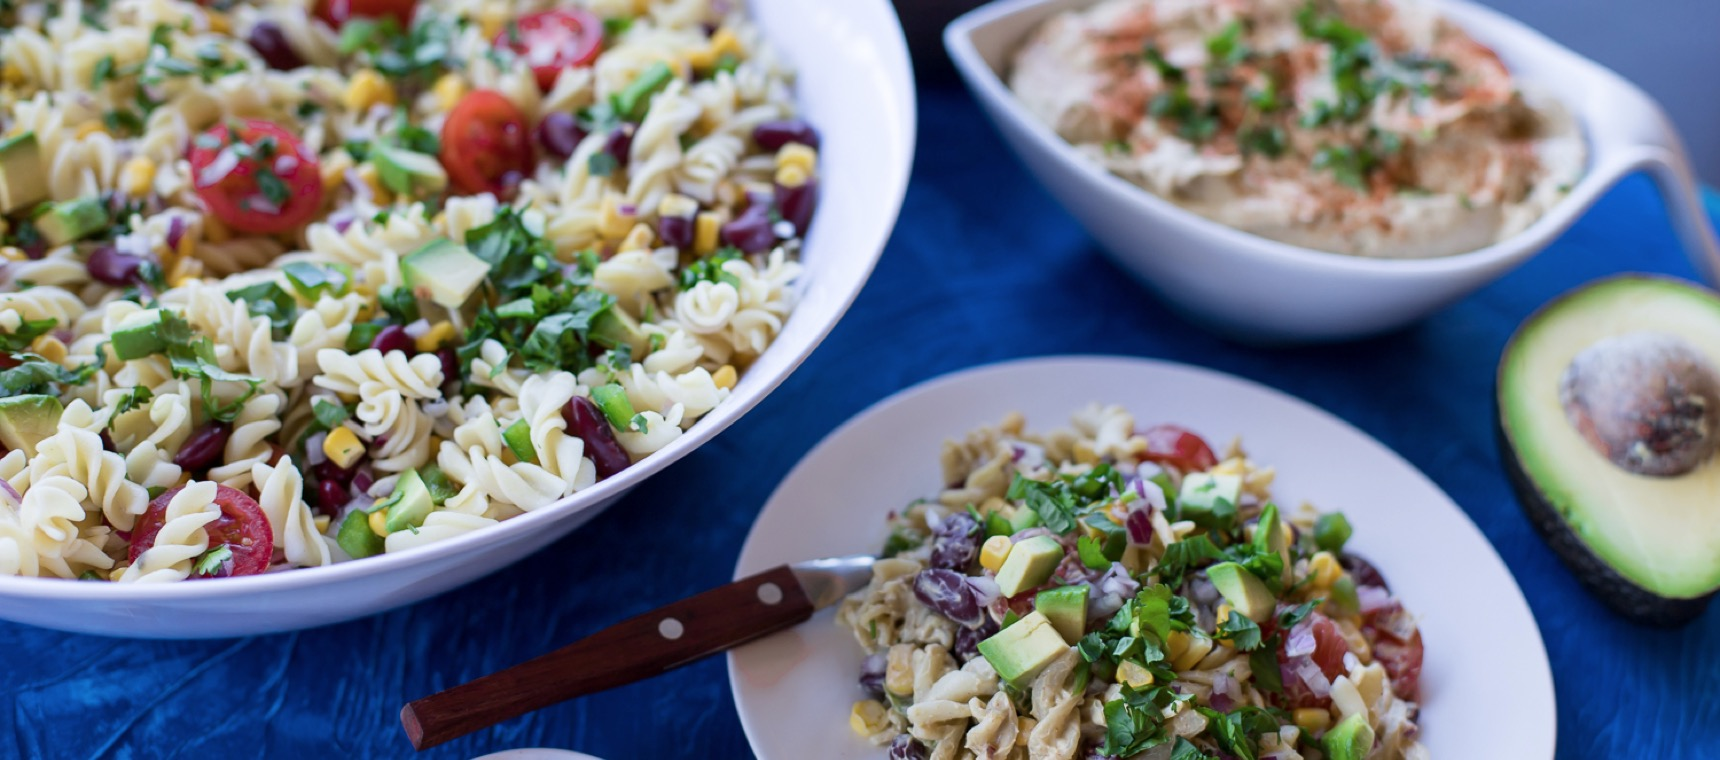 Mexican Pasta Salad with Avocado Dressing